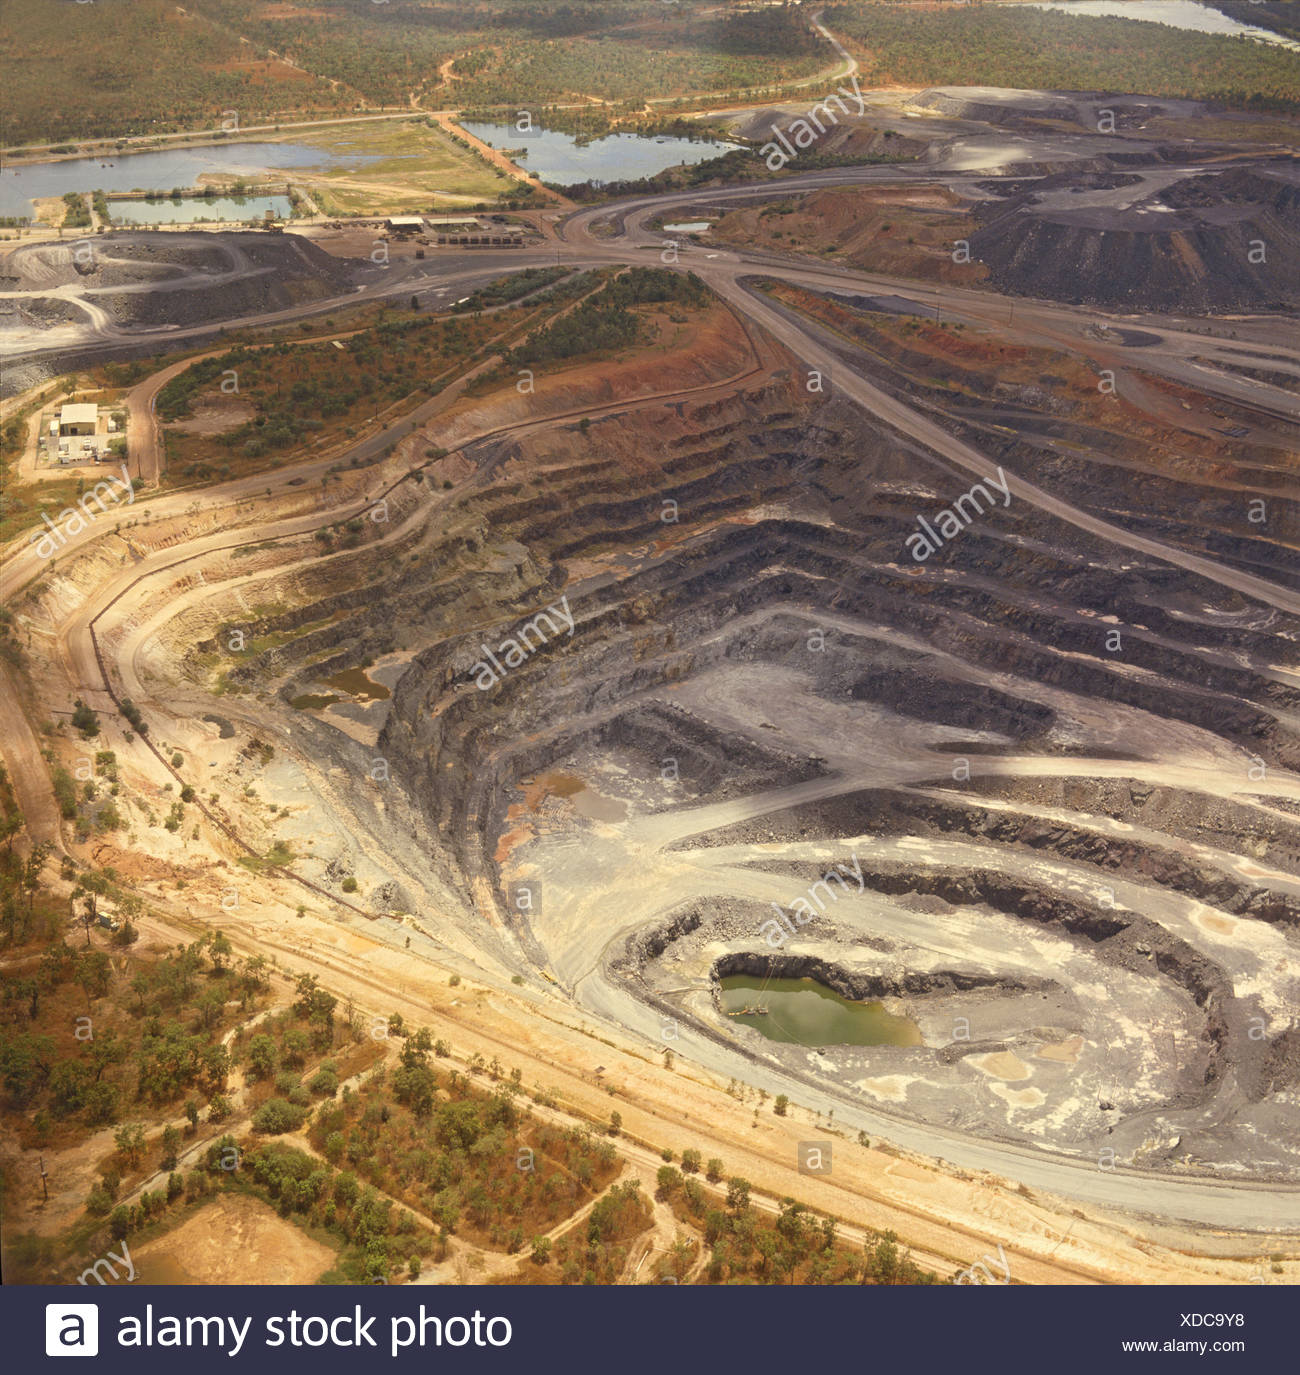 Uranium Mine Australia Stock Photos & Uranium Mine Australia Stock Images - Alamy